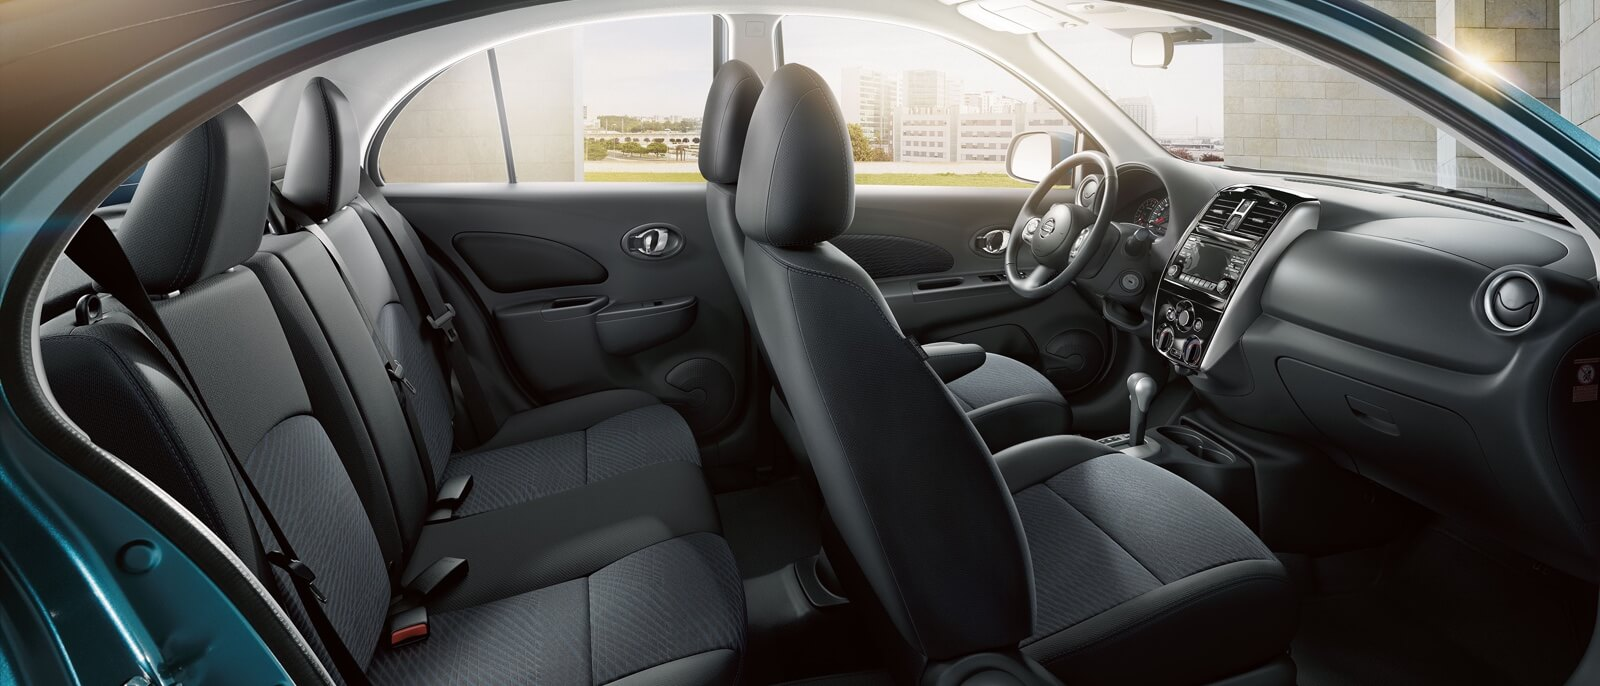 2016 Nissan Micra Is Finally Available in Swift Current